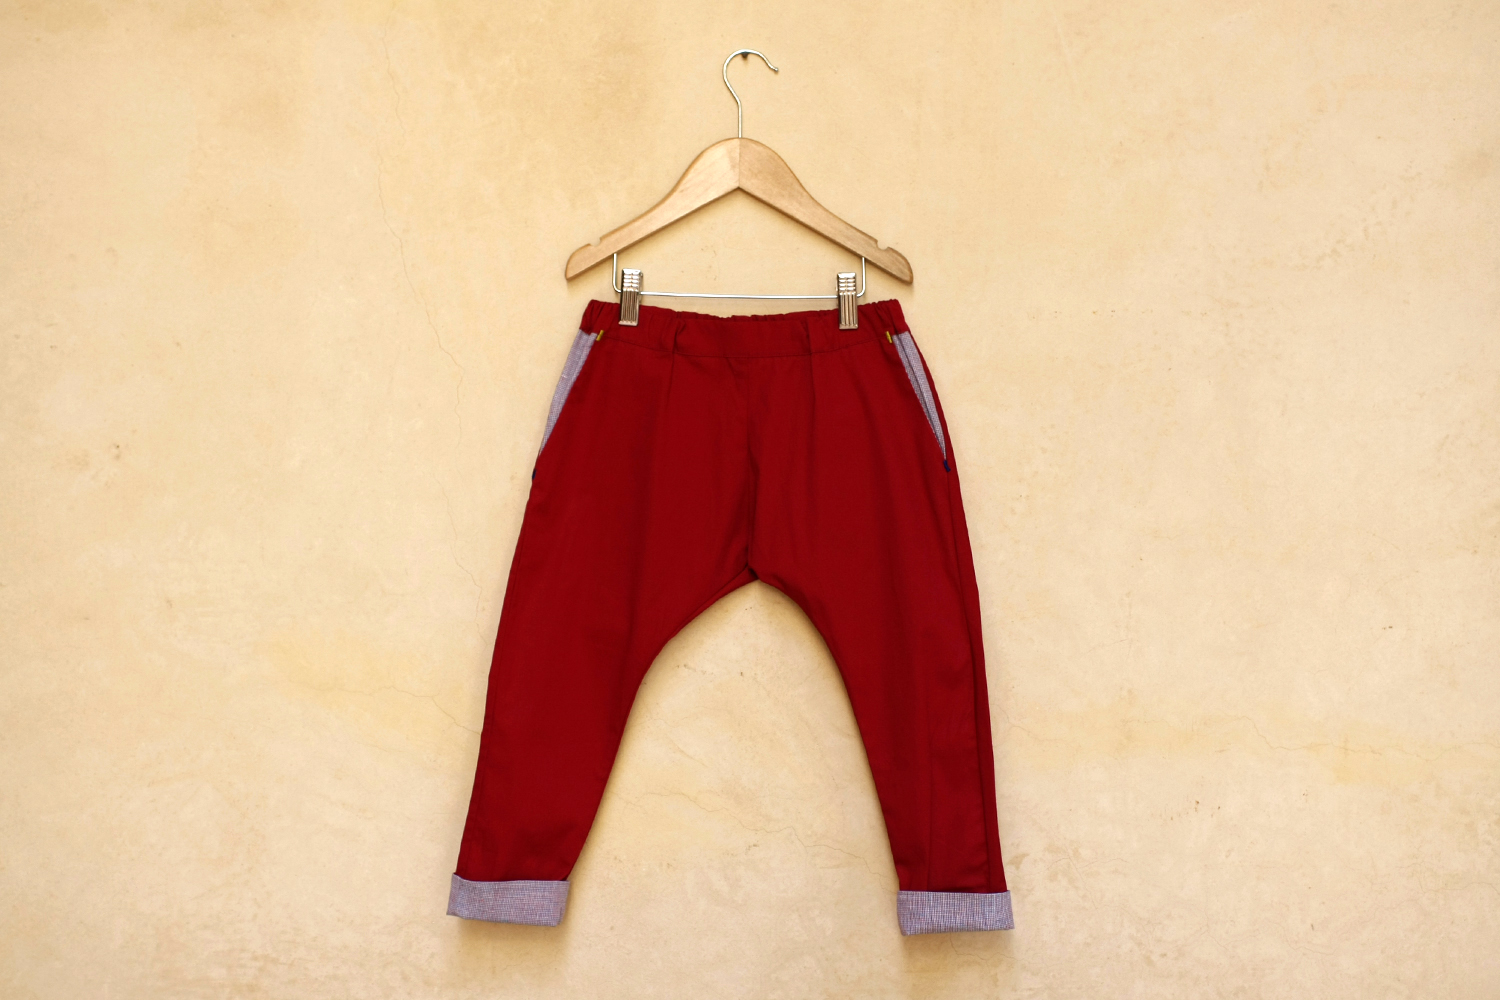 Boy_Pantalon_Maxi_rouge1.jpg